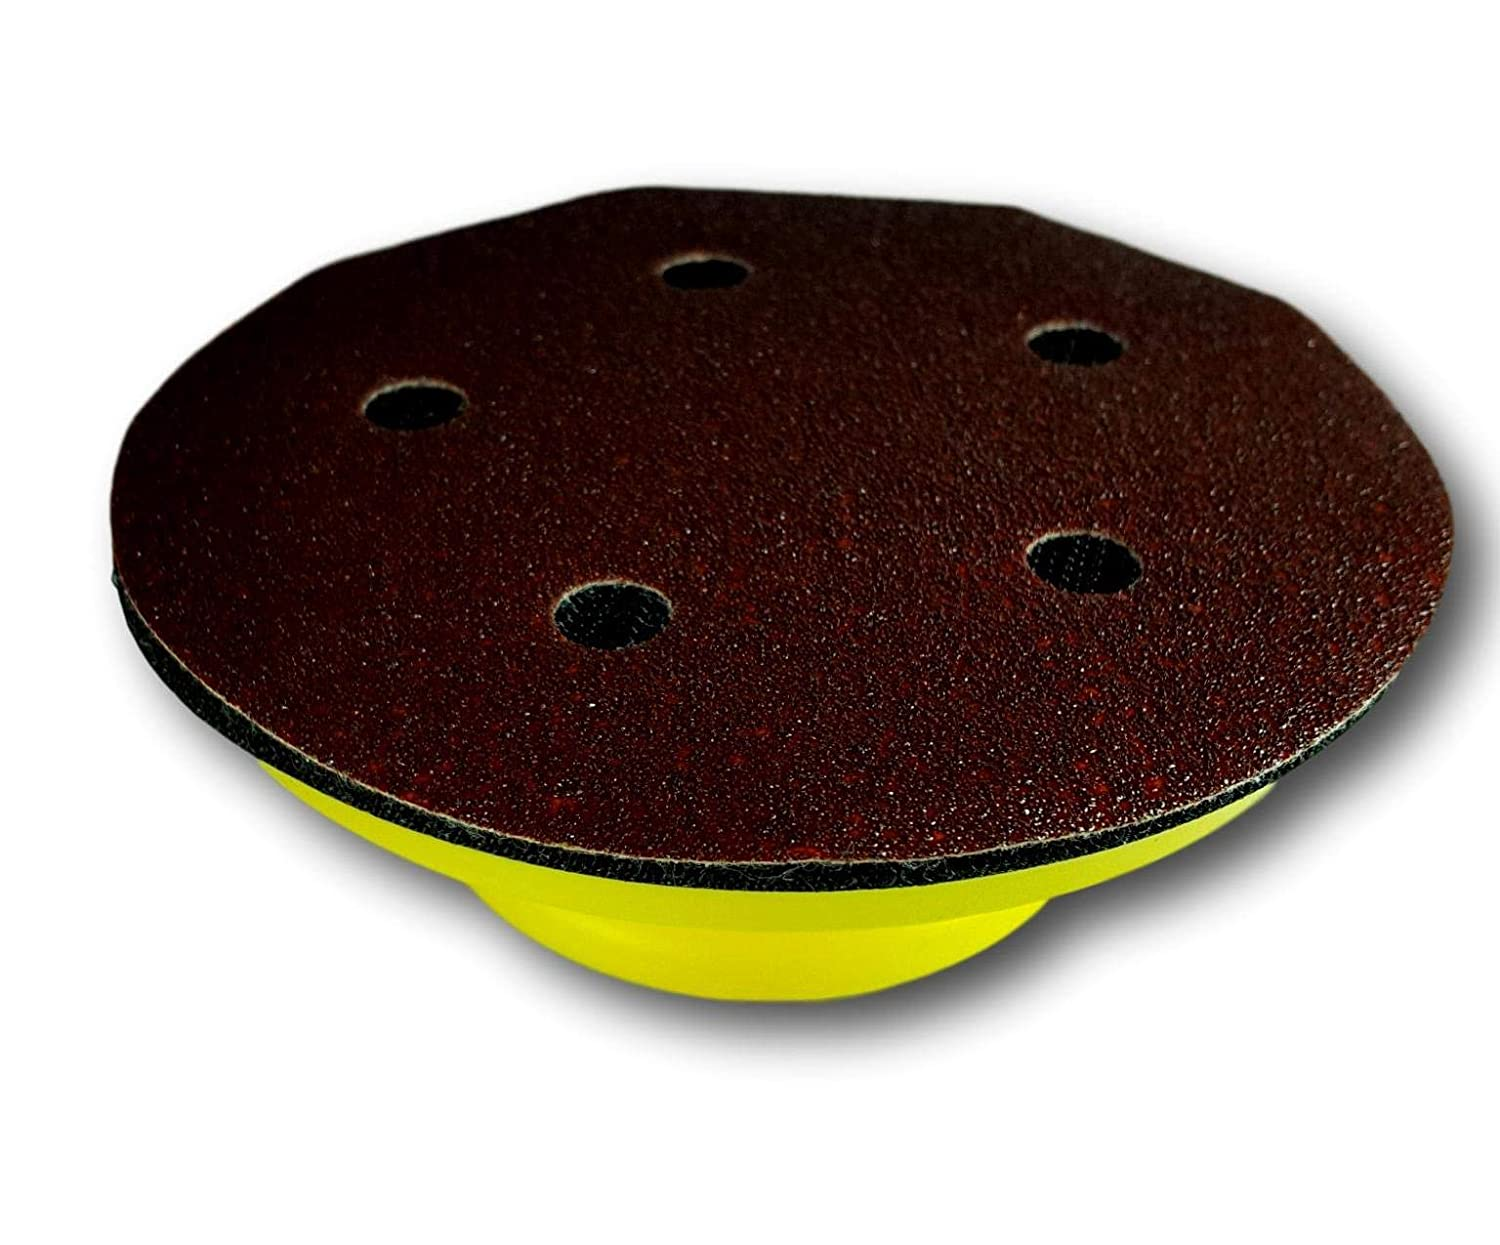 Round 5 Inch KIOLUX Uses Hook and Loop Sand Paper Pads Hand Sanding Block Ideal For Wood Furniture Restoration Home Arts and Crafts